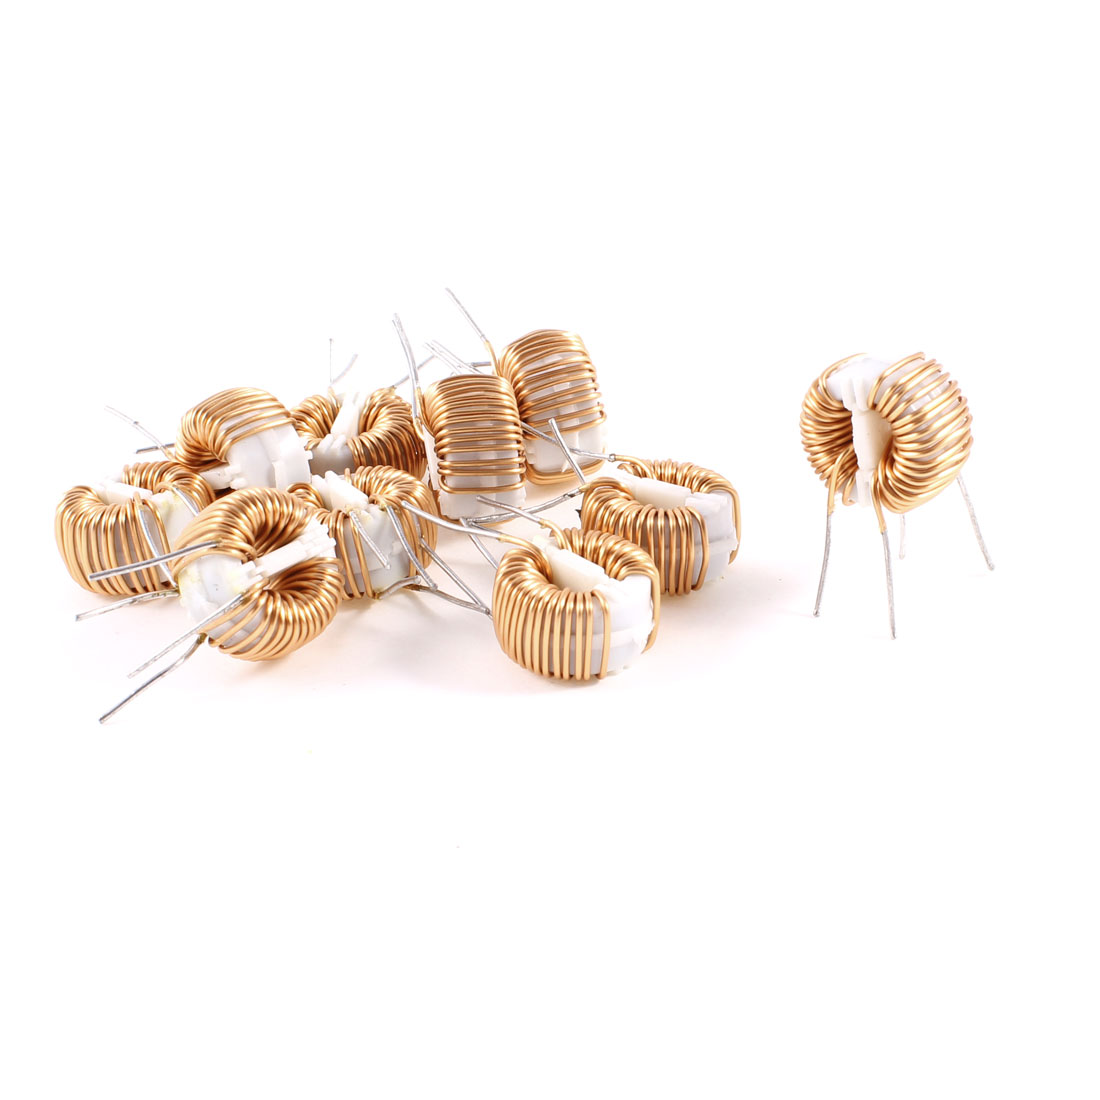 10 Pcs Toroid Core Common Mode Inductor Choke 1.5MH 50mOhm 1.5A Coil